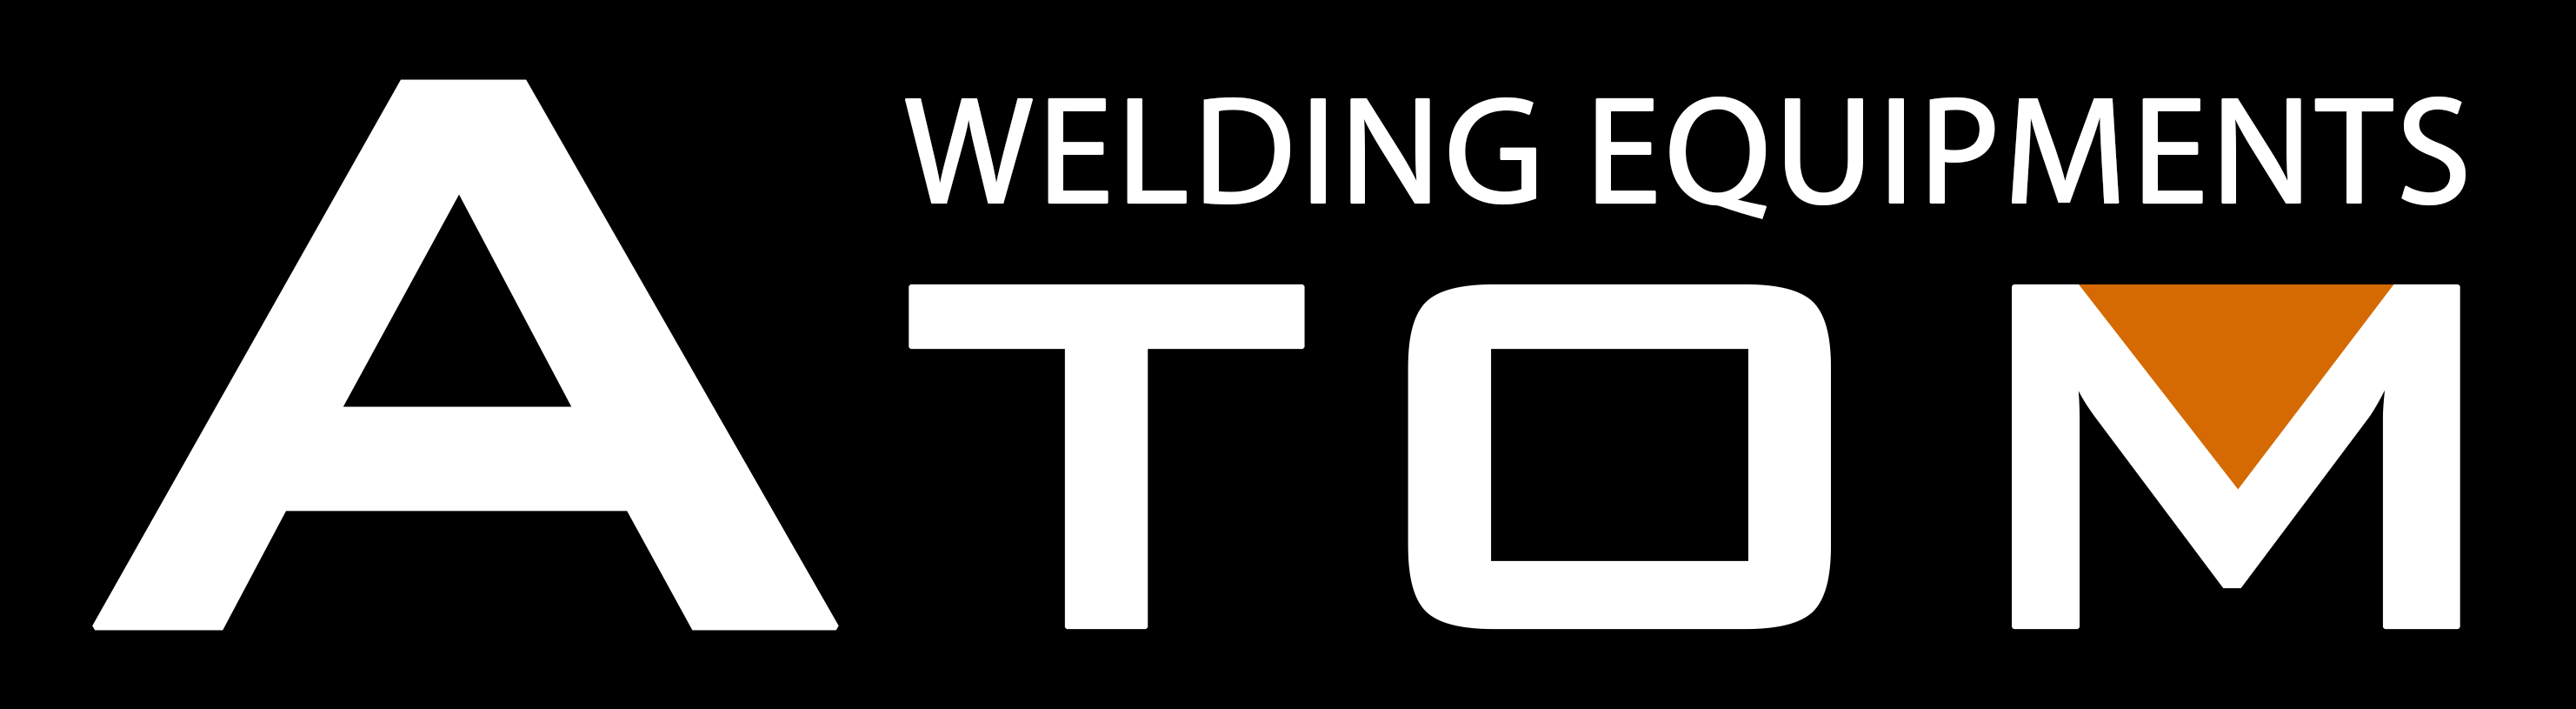 Atom Welding Equipments